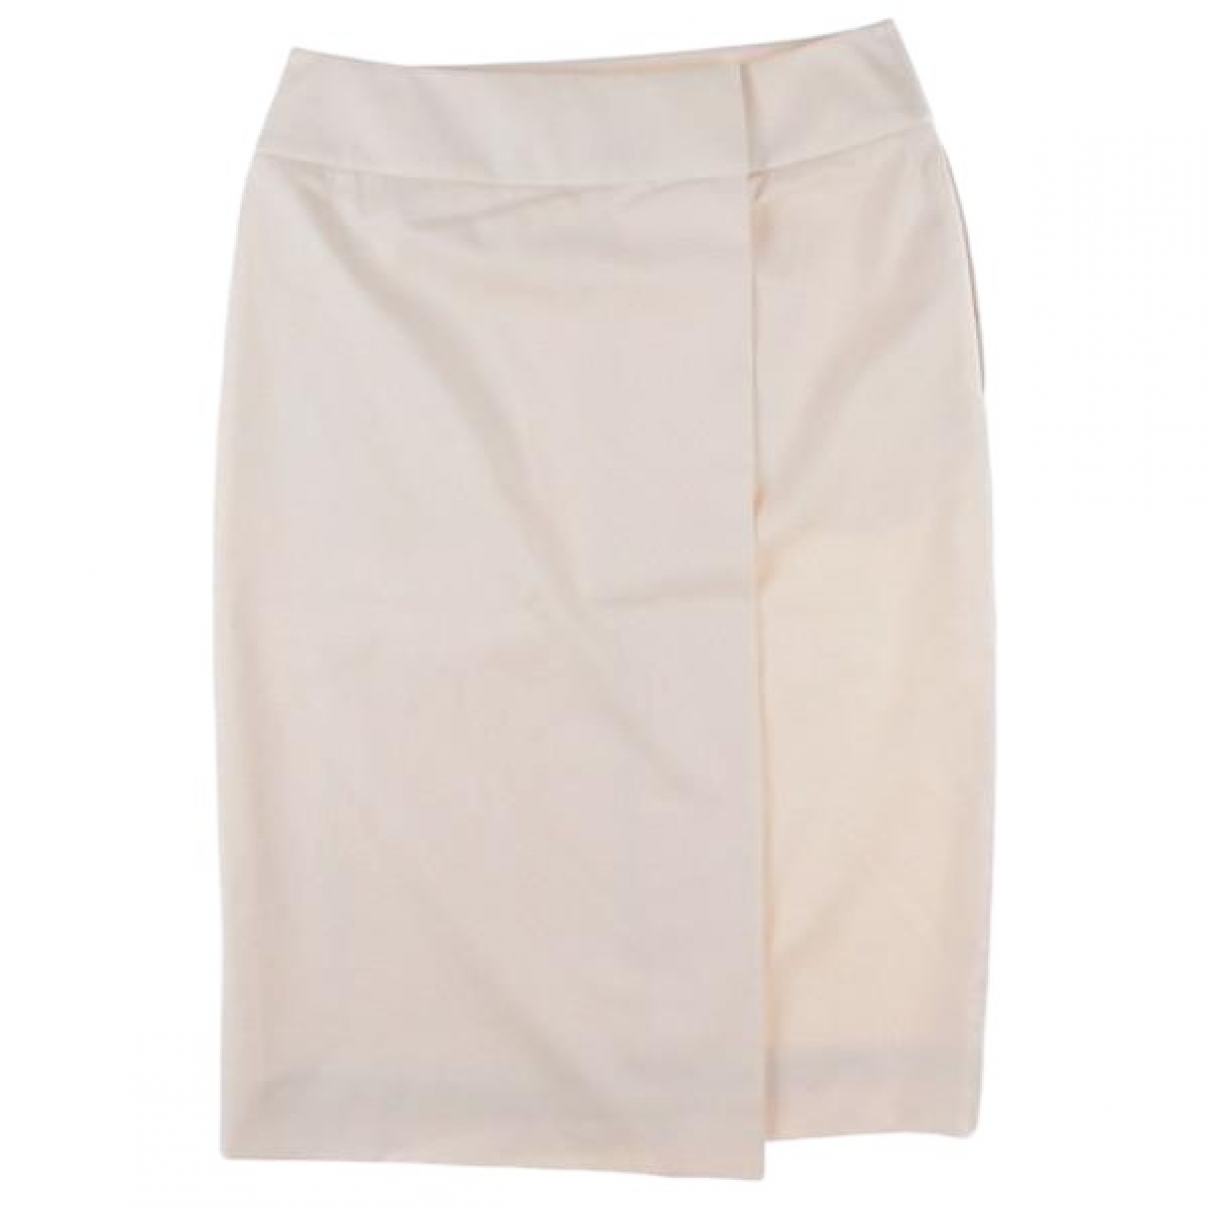 Hermès \N White Wool skirt for Women 34 FR